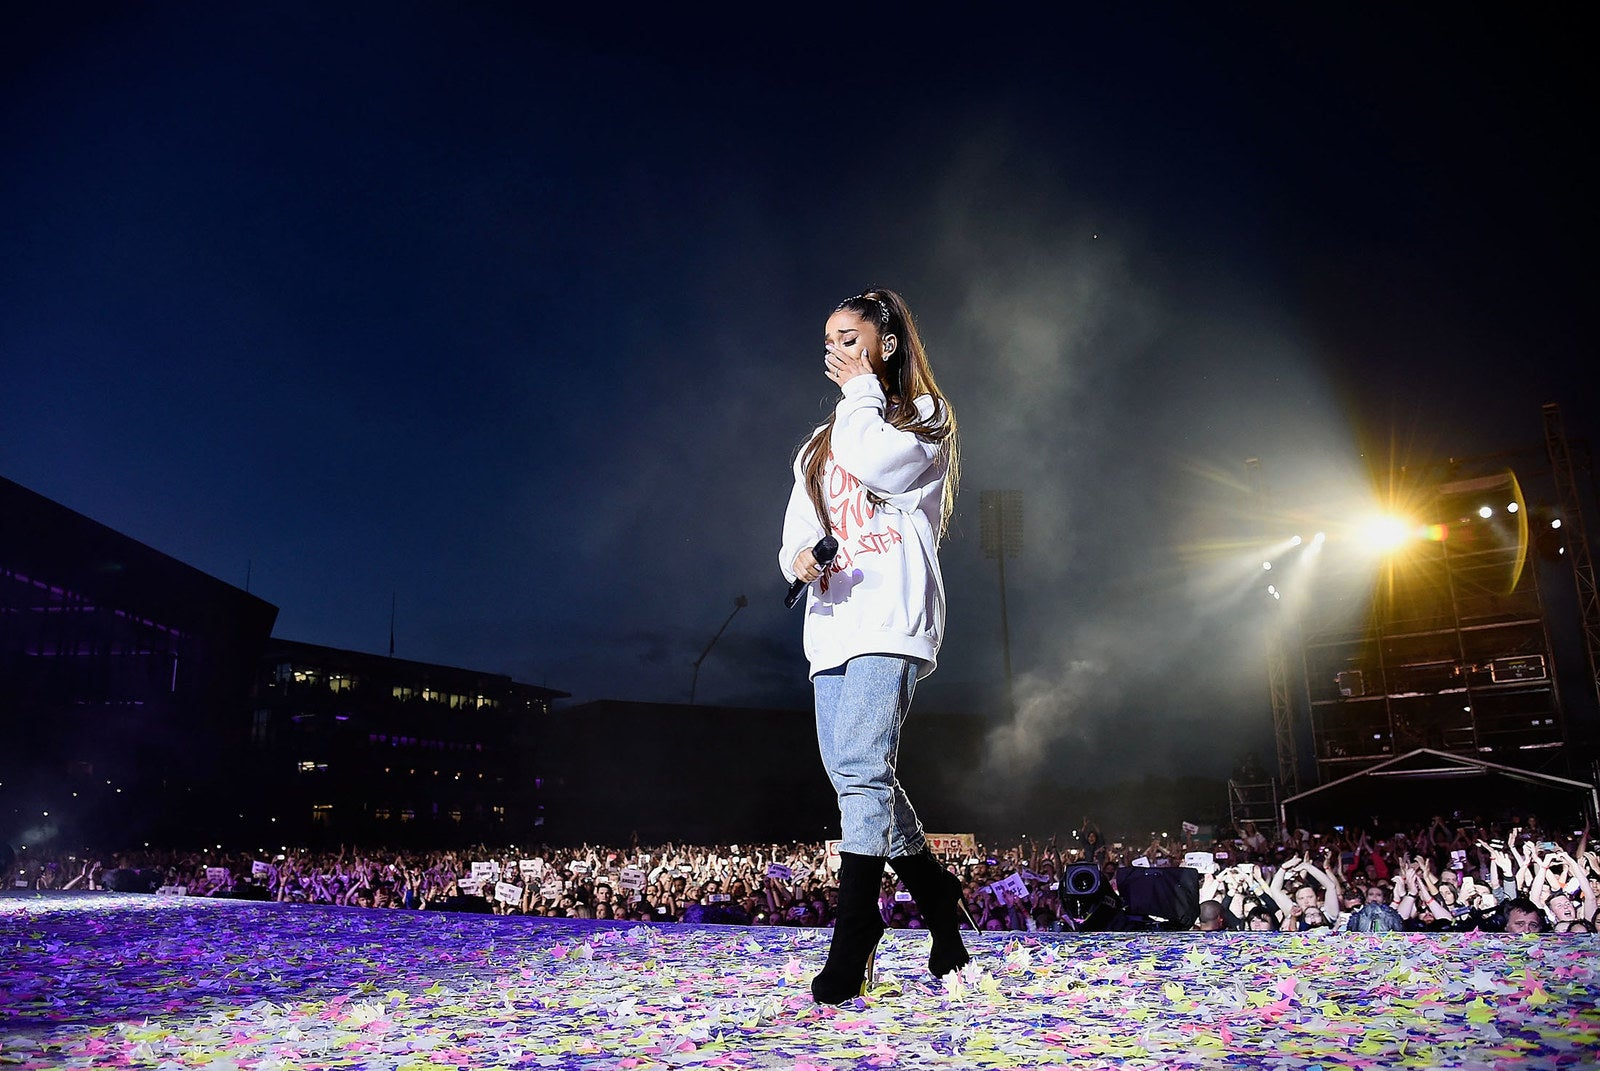 Ariana Grande wipes away a tear as she performs on stage during the One Love Manchester Benefit Concert at Old Trafford on June 4, in Manchester, England, following a terrorist attack at her Manchester Arena performance that left 23 dead and injured 512.